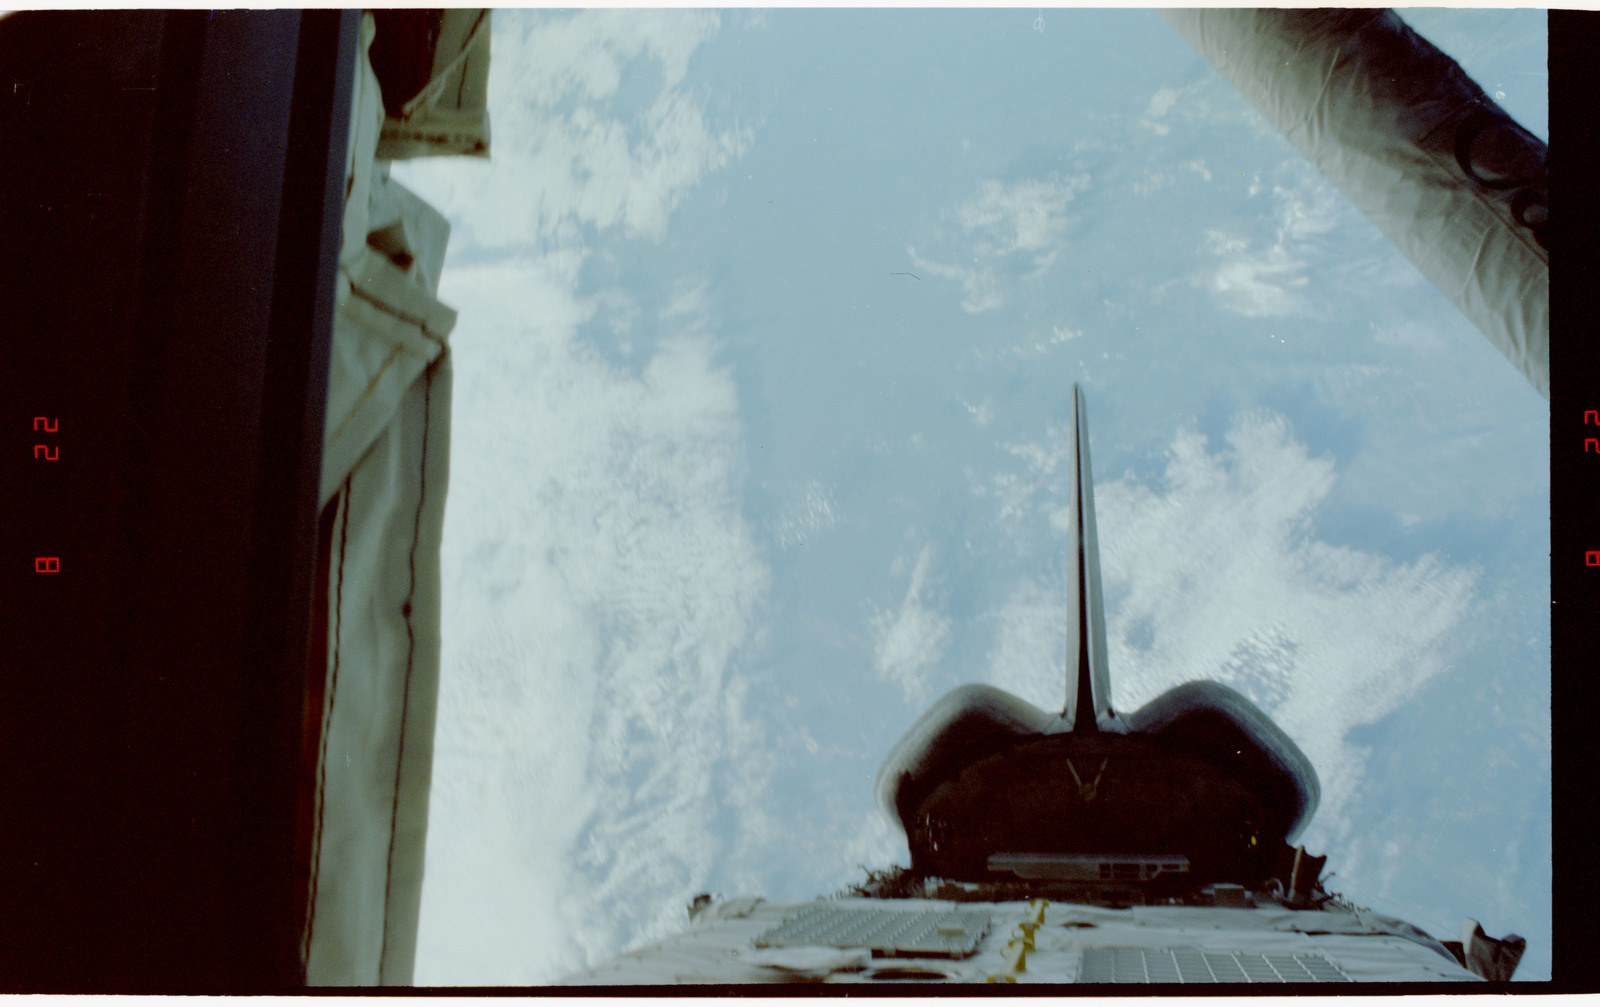 STS060-226-002 - STS-060 - View of the STS-60 Discovery's payload bay and RMS arm